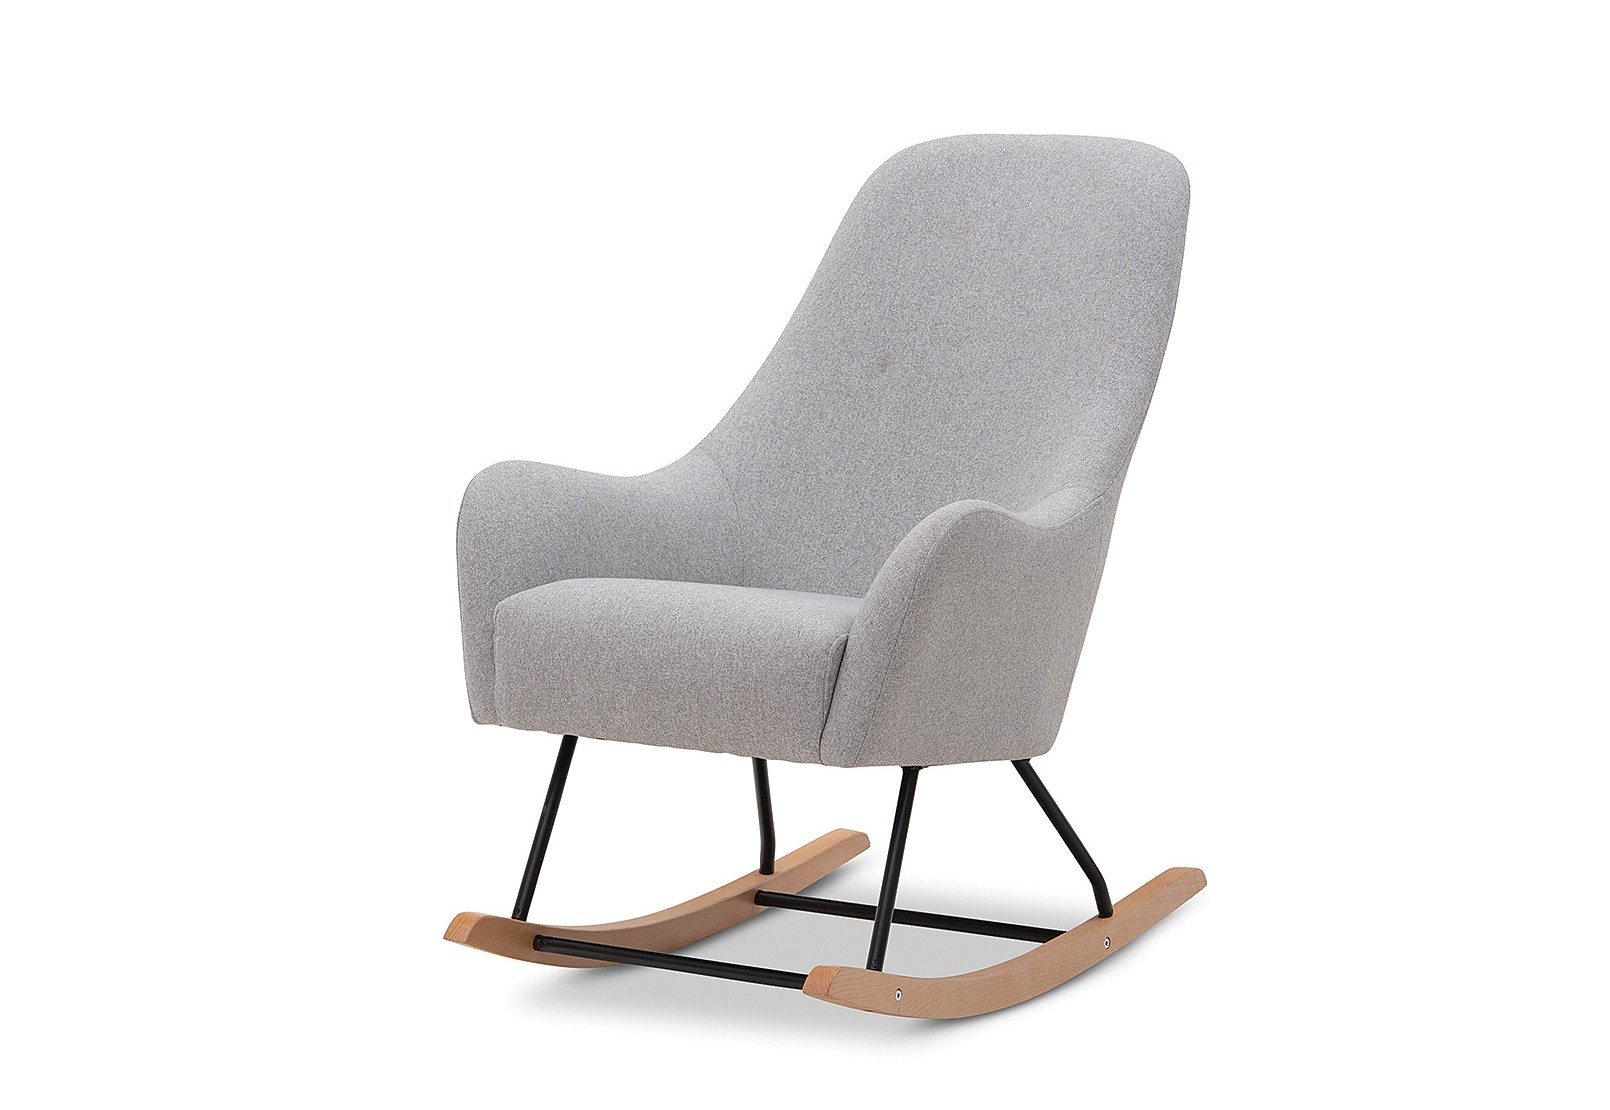 Gwen Accent Rocking Chair | Amart Furniture With Regard To Gwen Sofa Chairs (View 15 of 25)